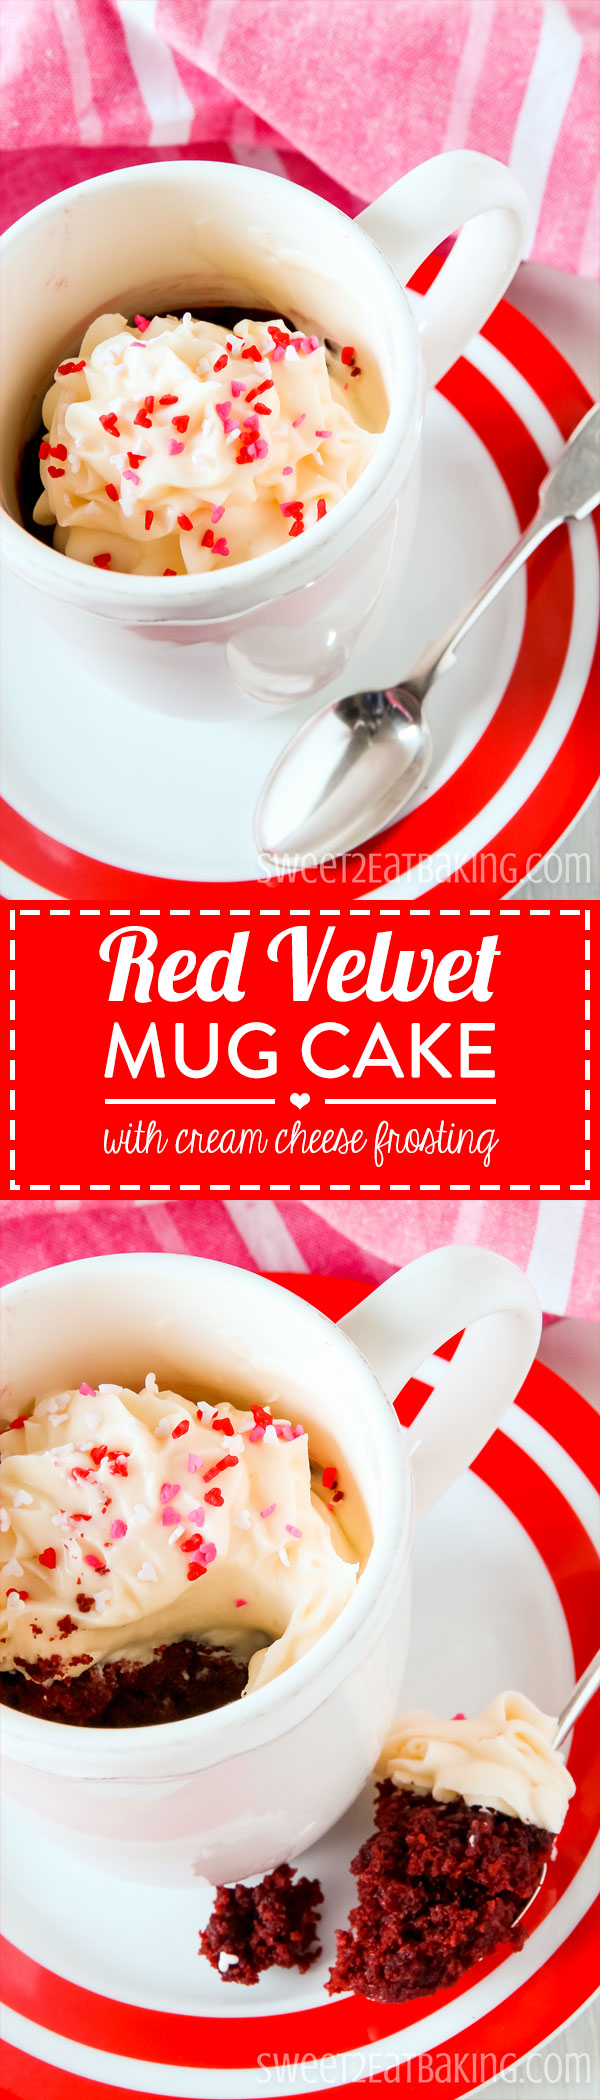 Valentine's Red Velvet Mug Cake with Cream Cheese Frosting Recipe by Sweet2EatBaking.com – It's moist, egg-free and utterly delicious with that distinctive red velvet flavour. I've even topped it off with a complimenting cream cheese frosting